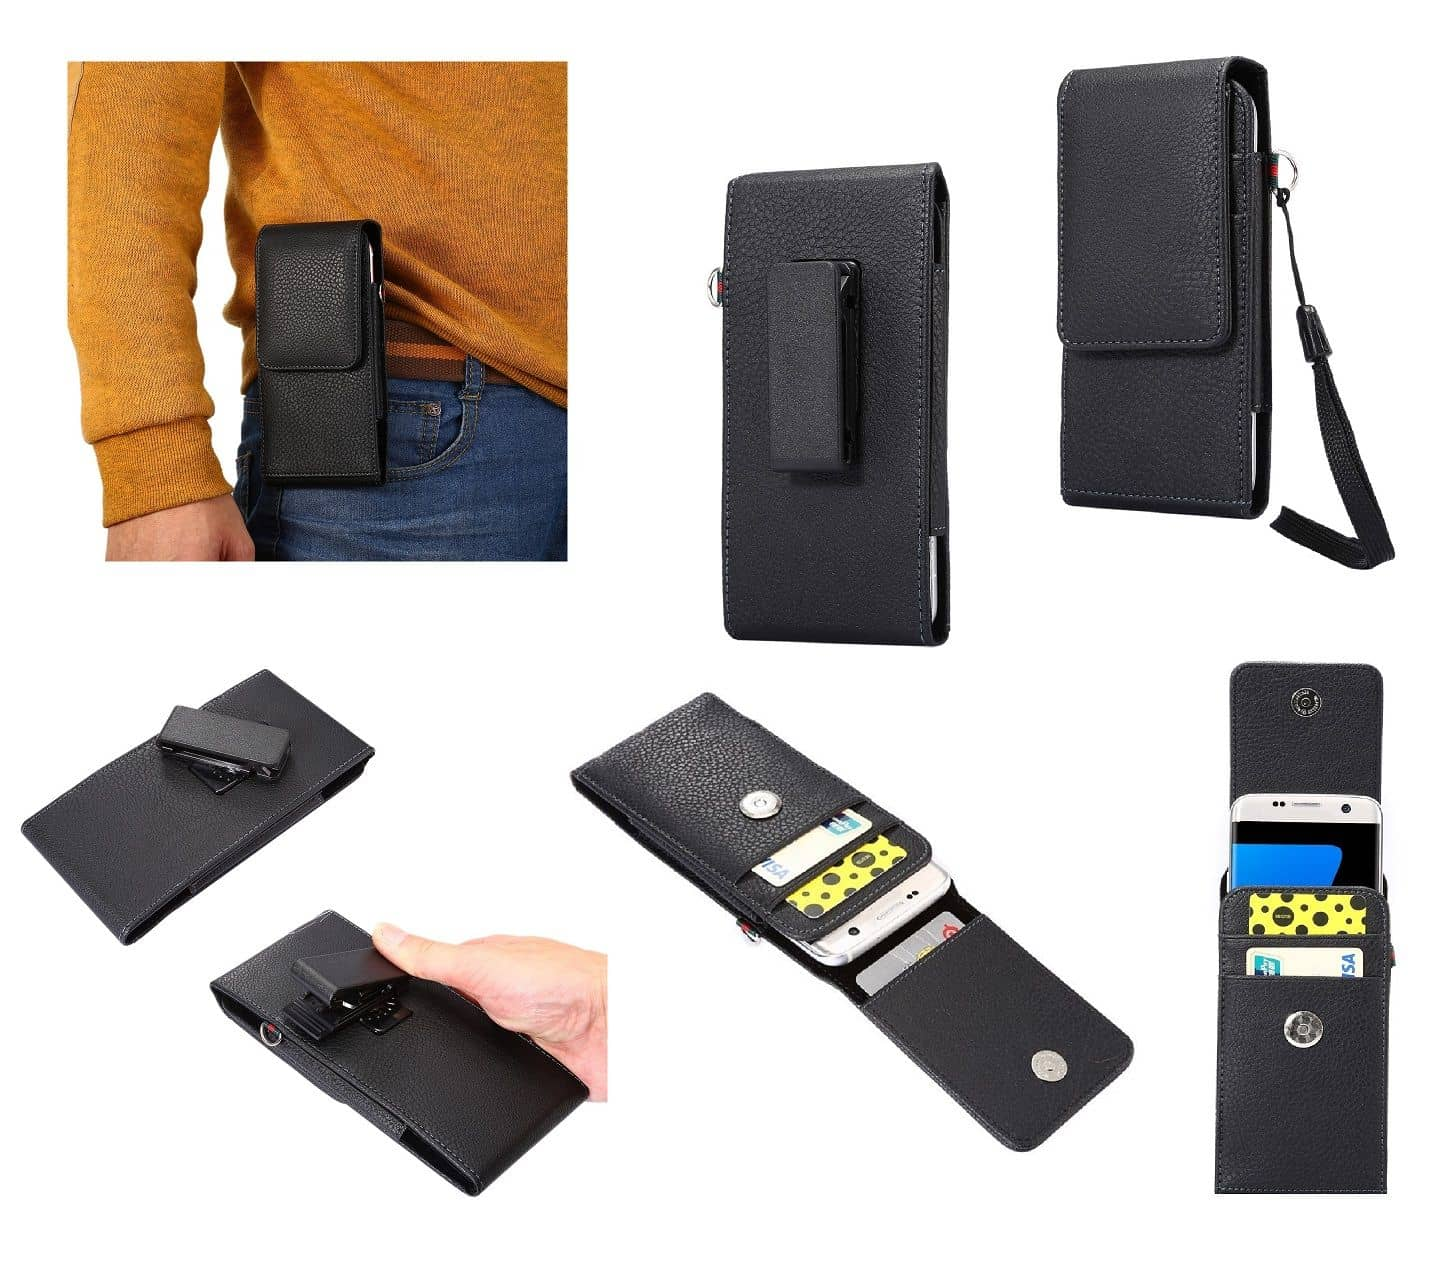 Magnetic leather Holster Card Holder Case belt Clip Rotary 360 for Vivo iQOO Neo 855 Plus (2019) - Black